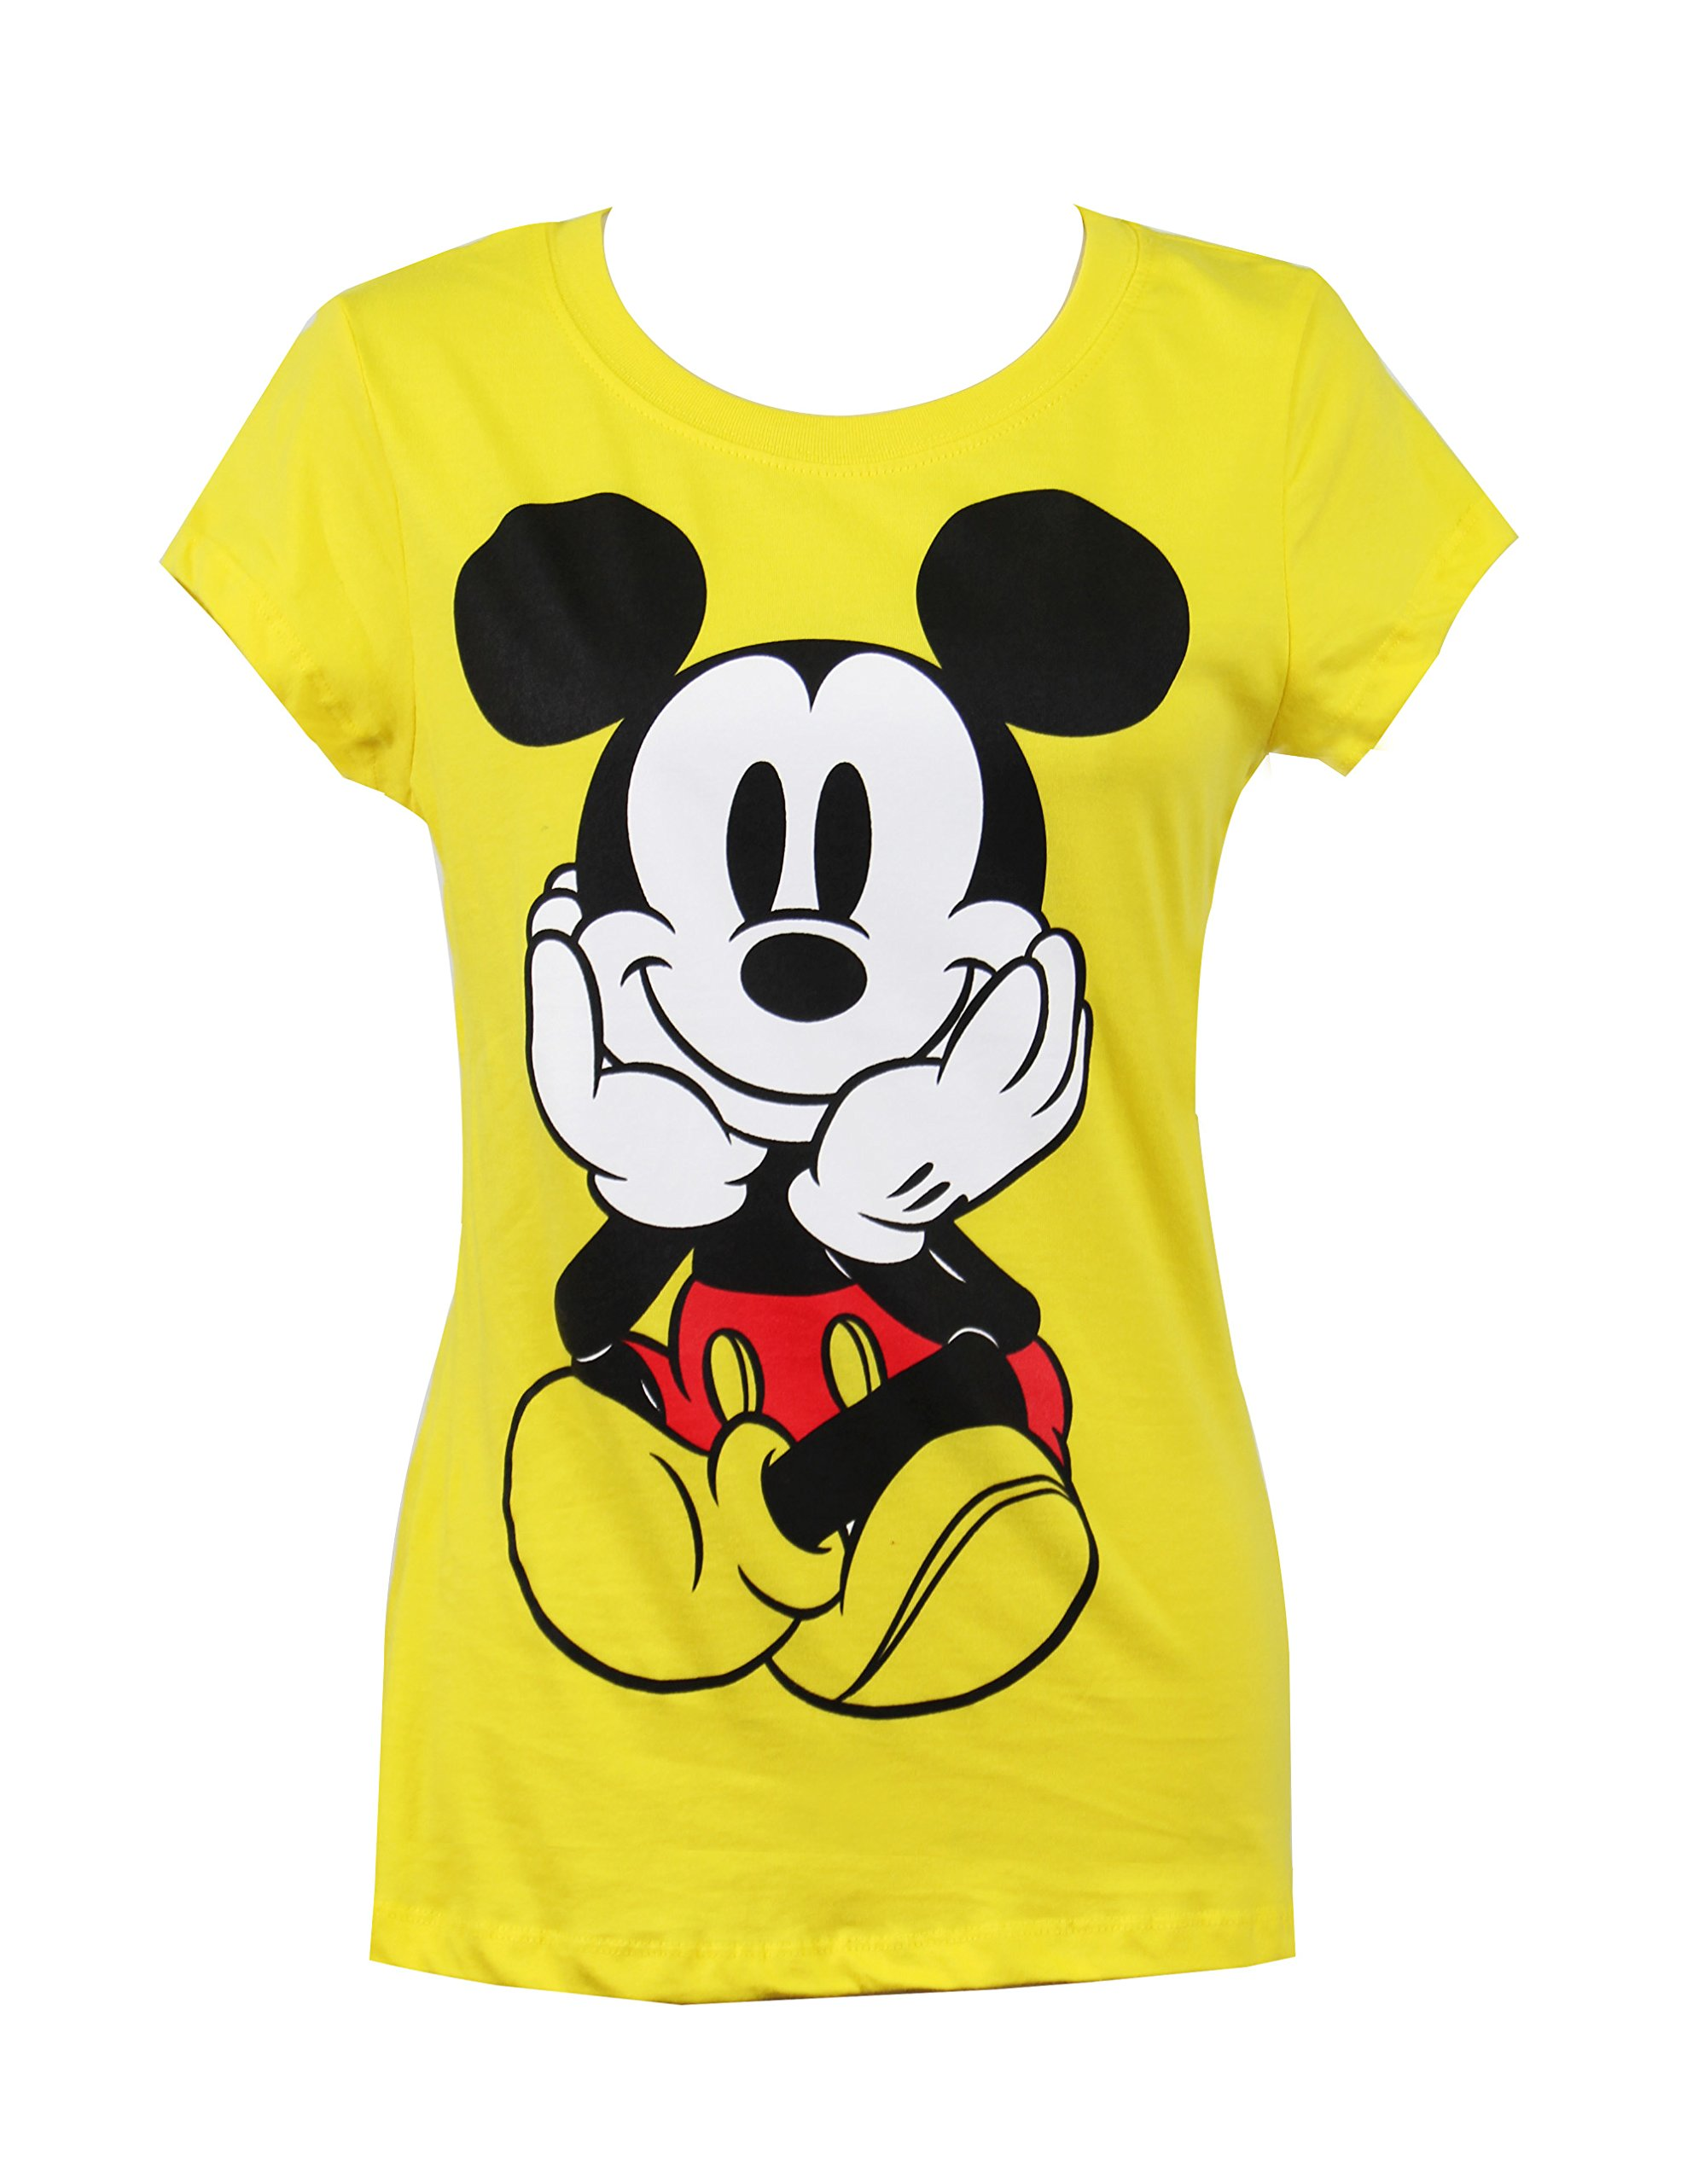 Mickey Mouse Graphic Print Front Back Crewneck Short Sleeve T-Shirt (Large)